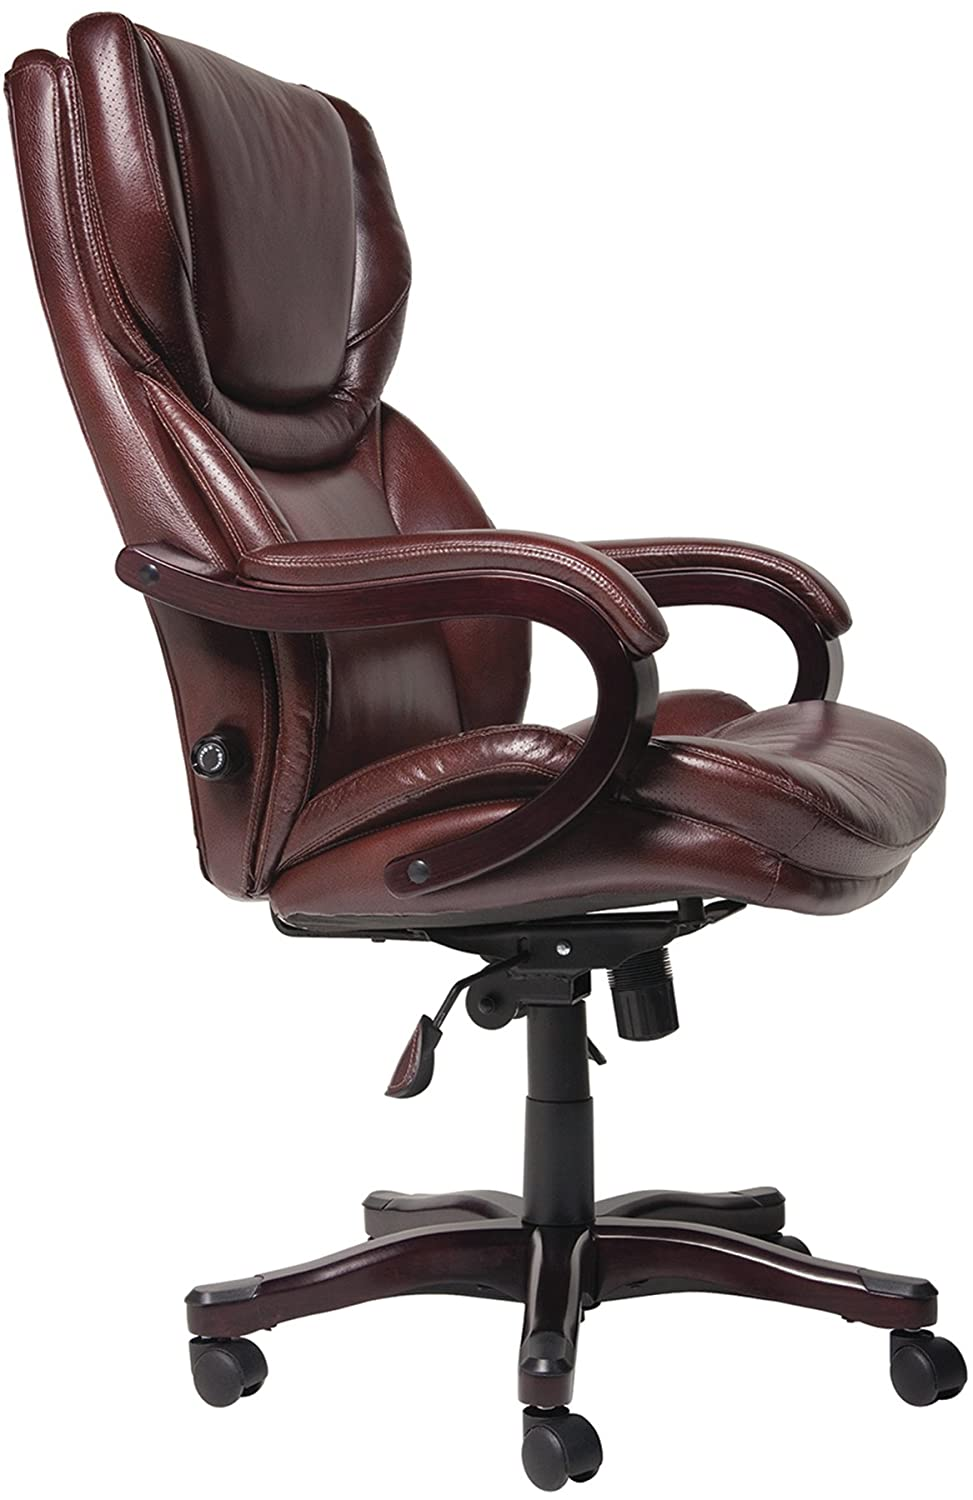 Serta at home executive big and tall office chair eco friendly bonded leather brown 43506 amazon ca home kitchen